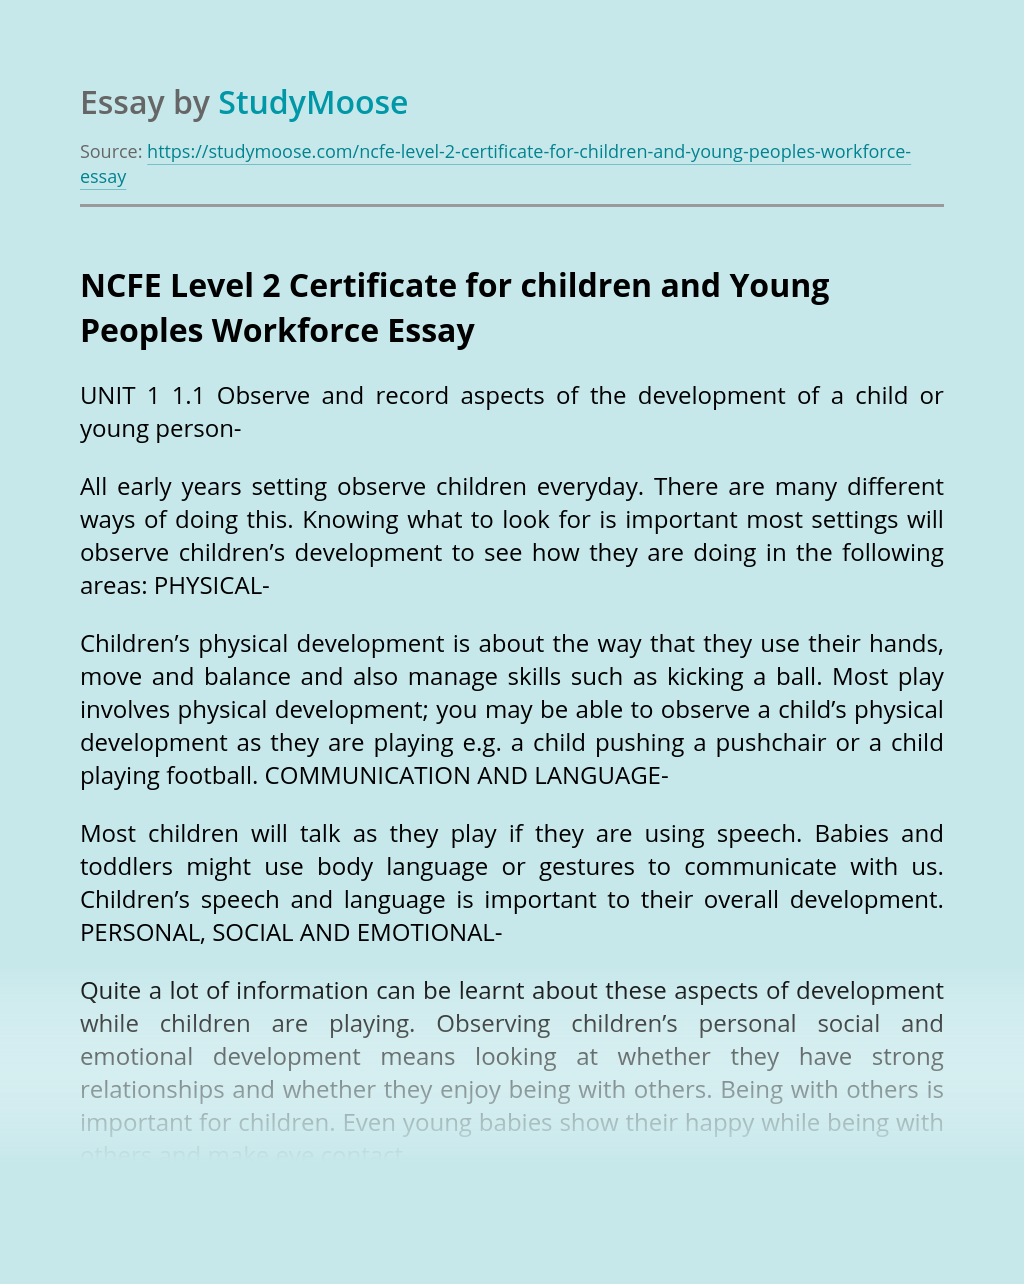 NCFE Level 2 Certificate for children and Young Peoples Workforce